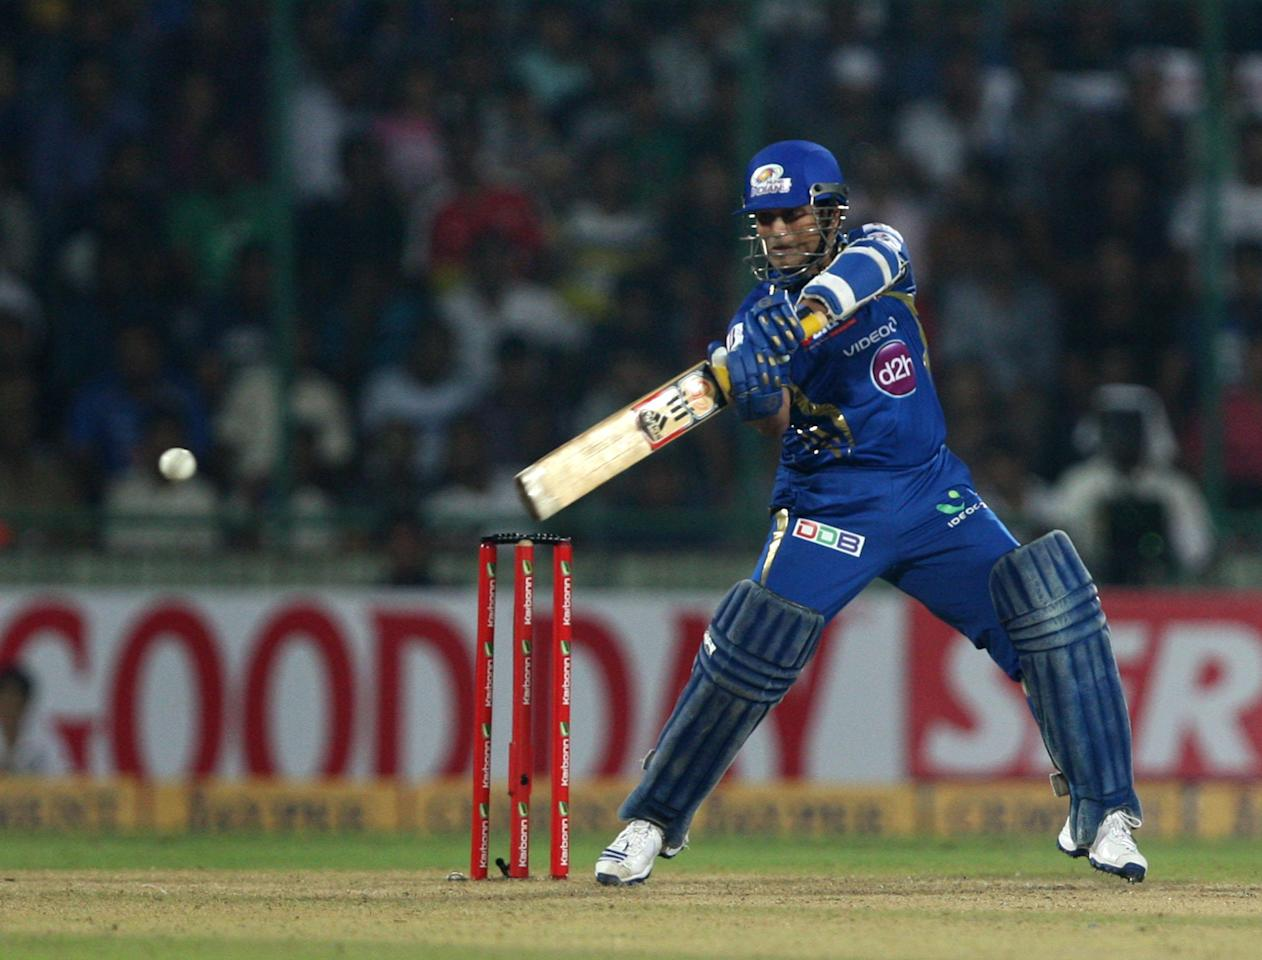 MI batsman Sachin Tendulkar in action during the 2nd CLT20 semi-final match between Mumbai Indians and Trinidad & Tobago at Feroz Shah Kotla, Delhi on Oct. 5, 2013. (Photo: IANS)